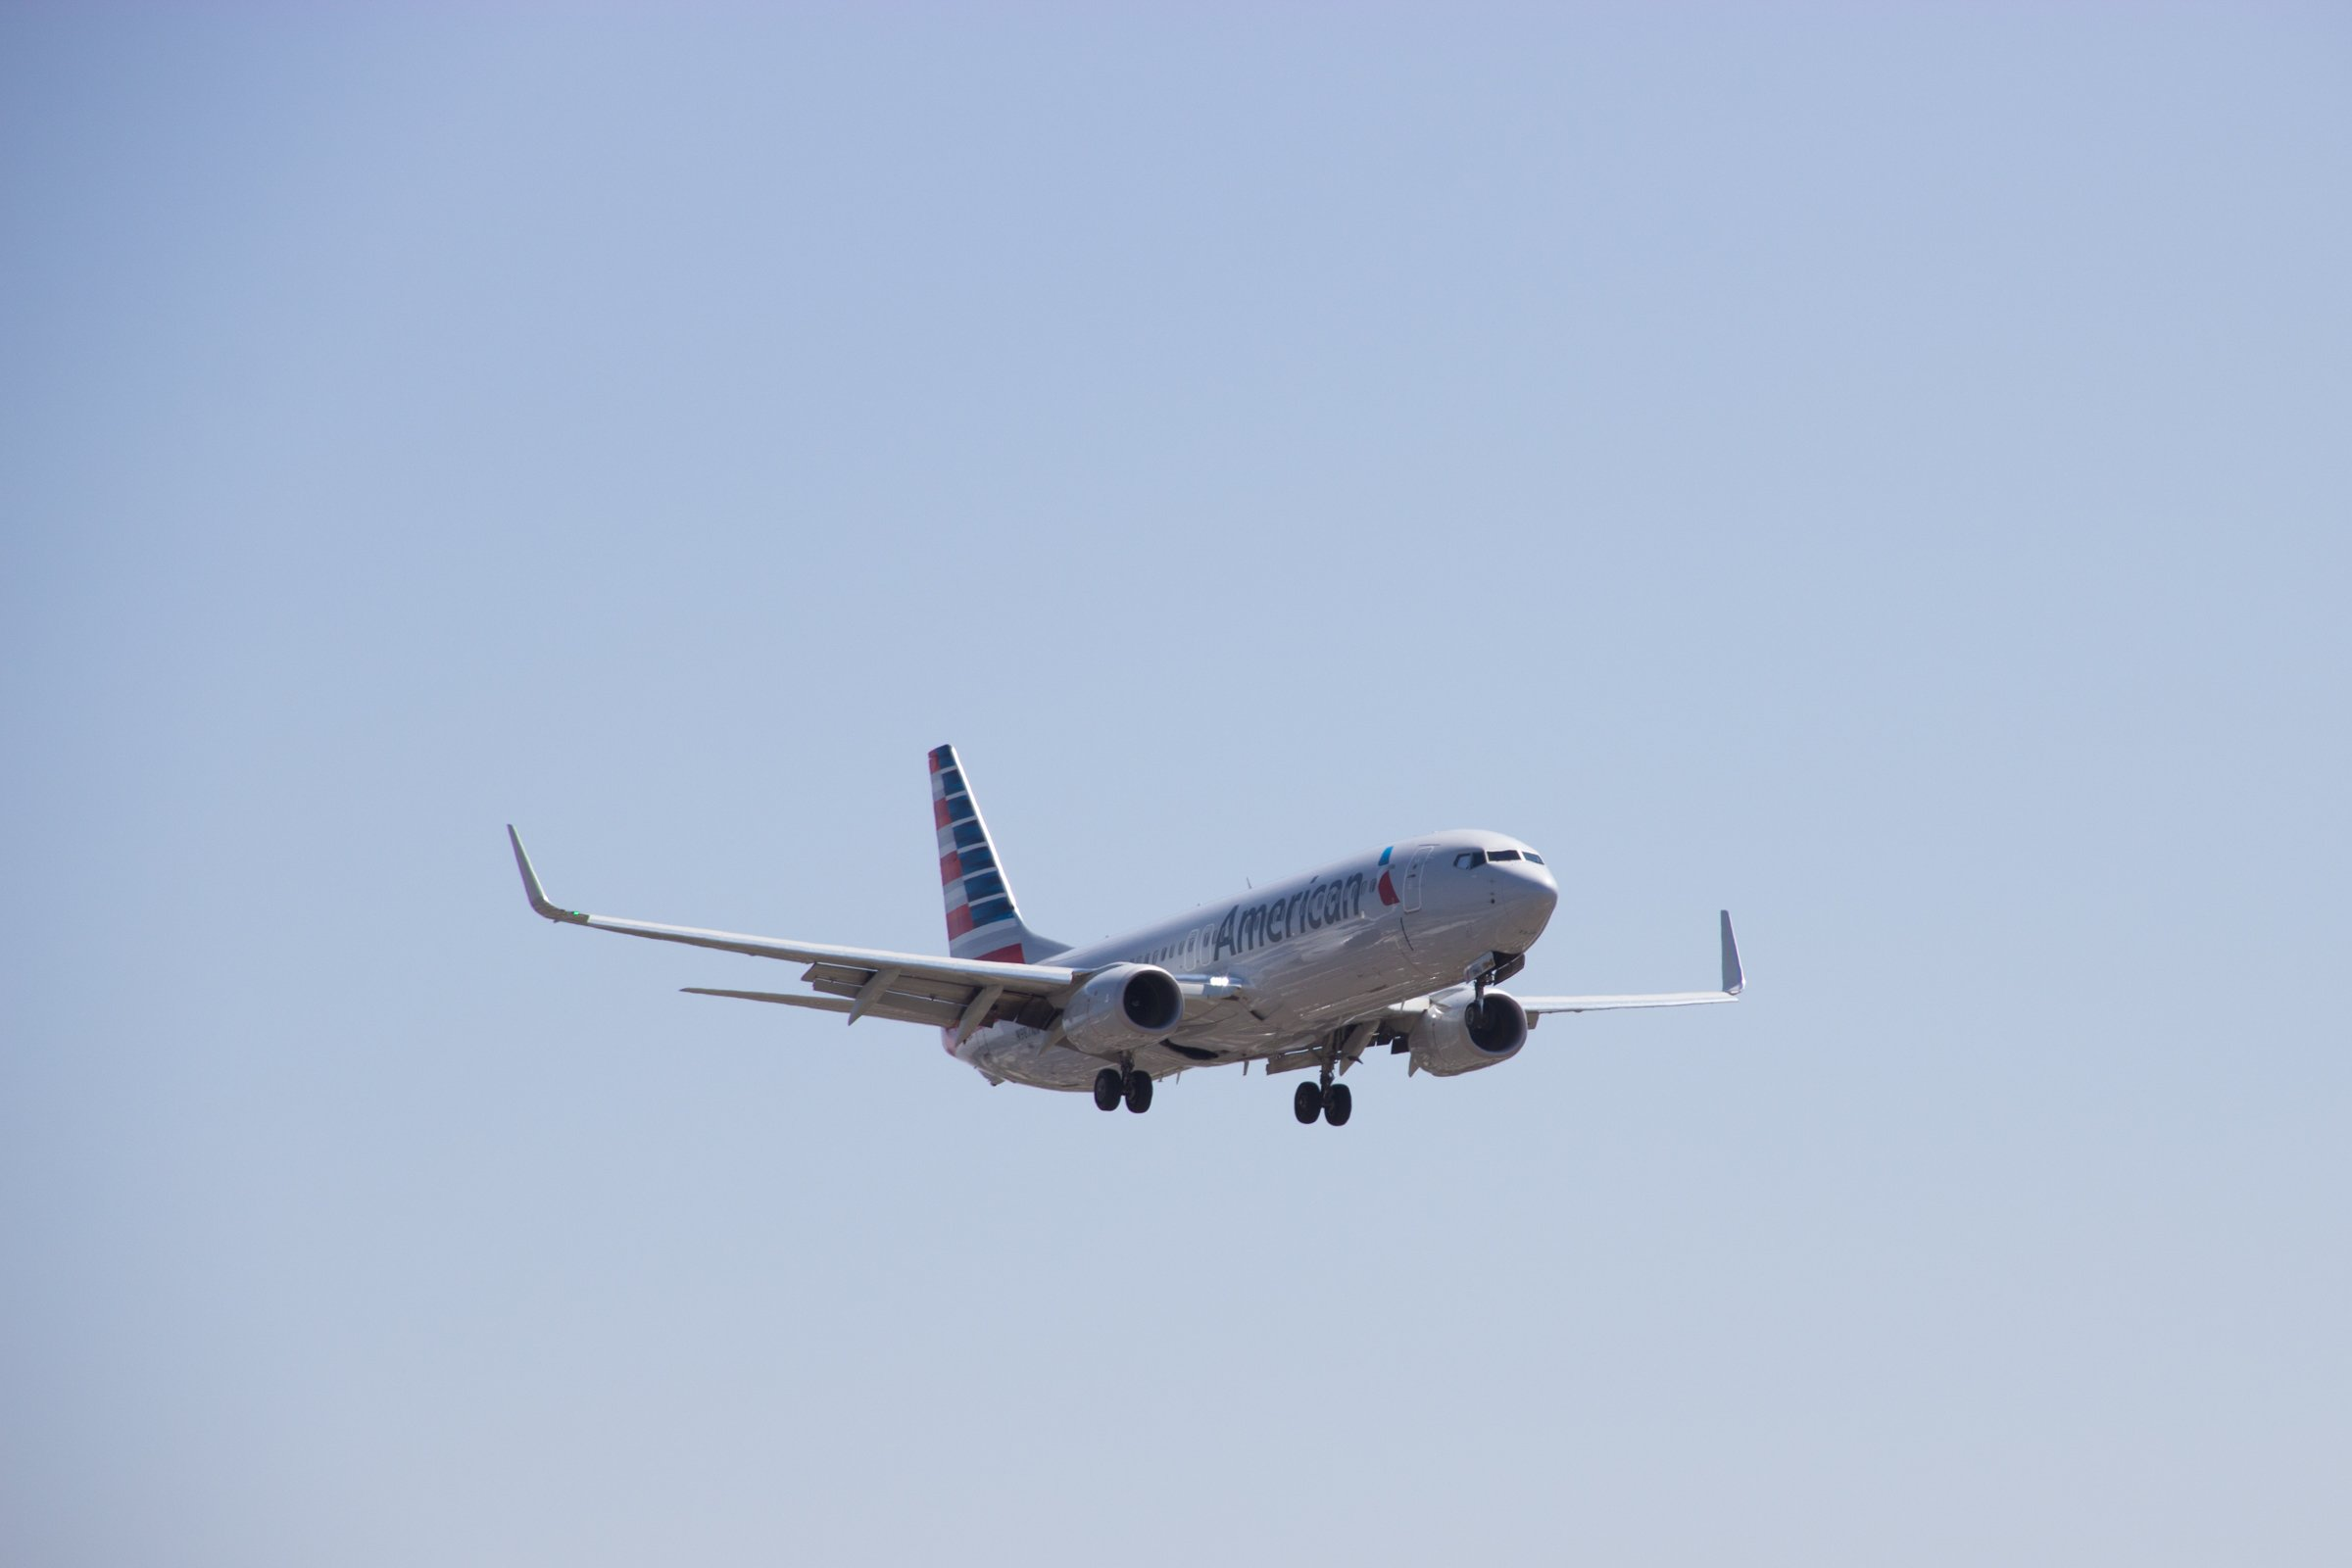 American Airlines Airplane in Sky